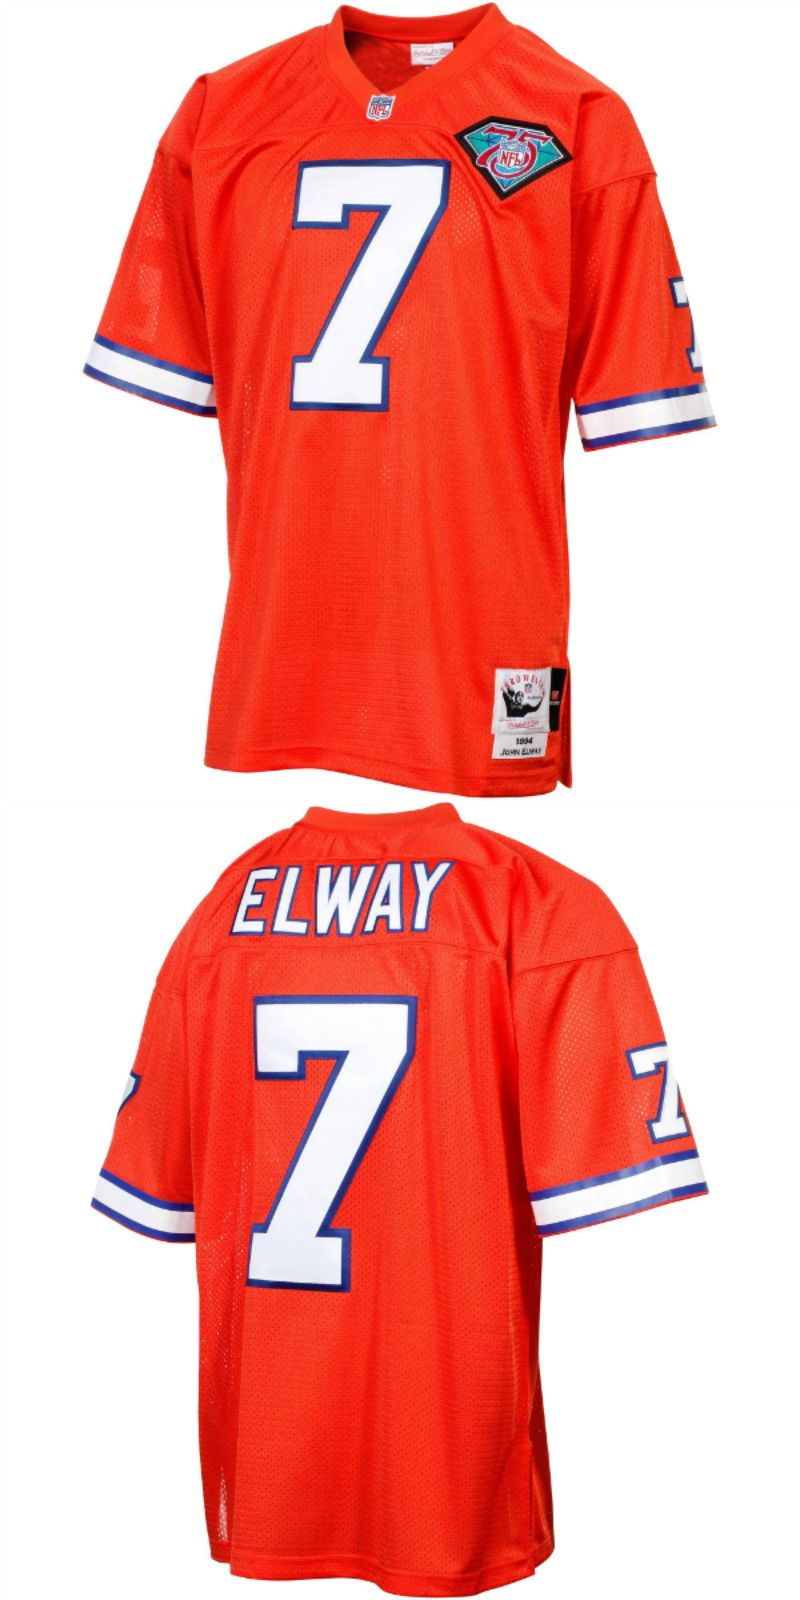 finest selection d86b3 96cb6 2019 的UP TO 70% OFF. John Elway Denver Broncos Mitchell ...